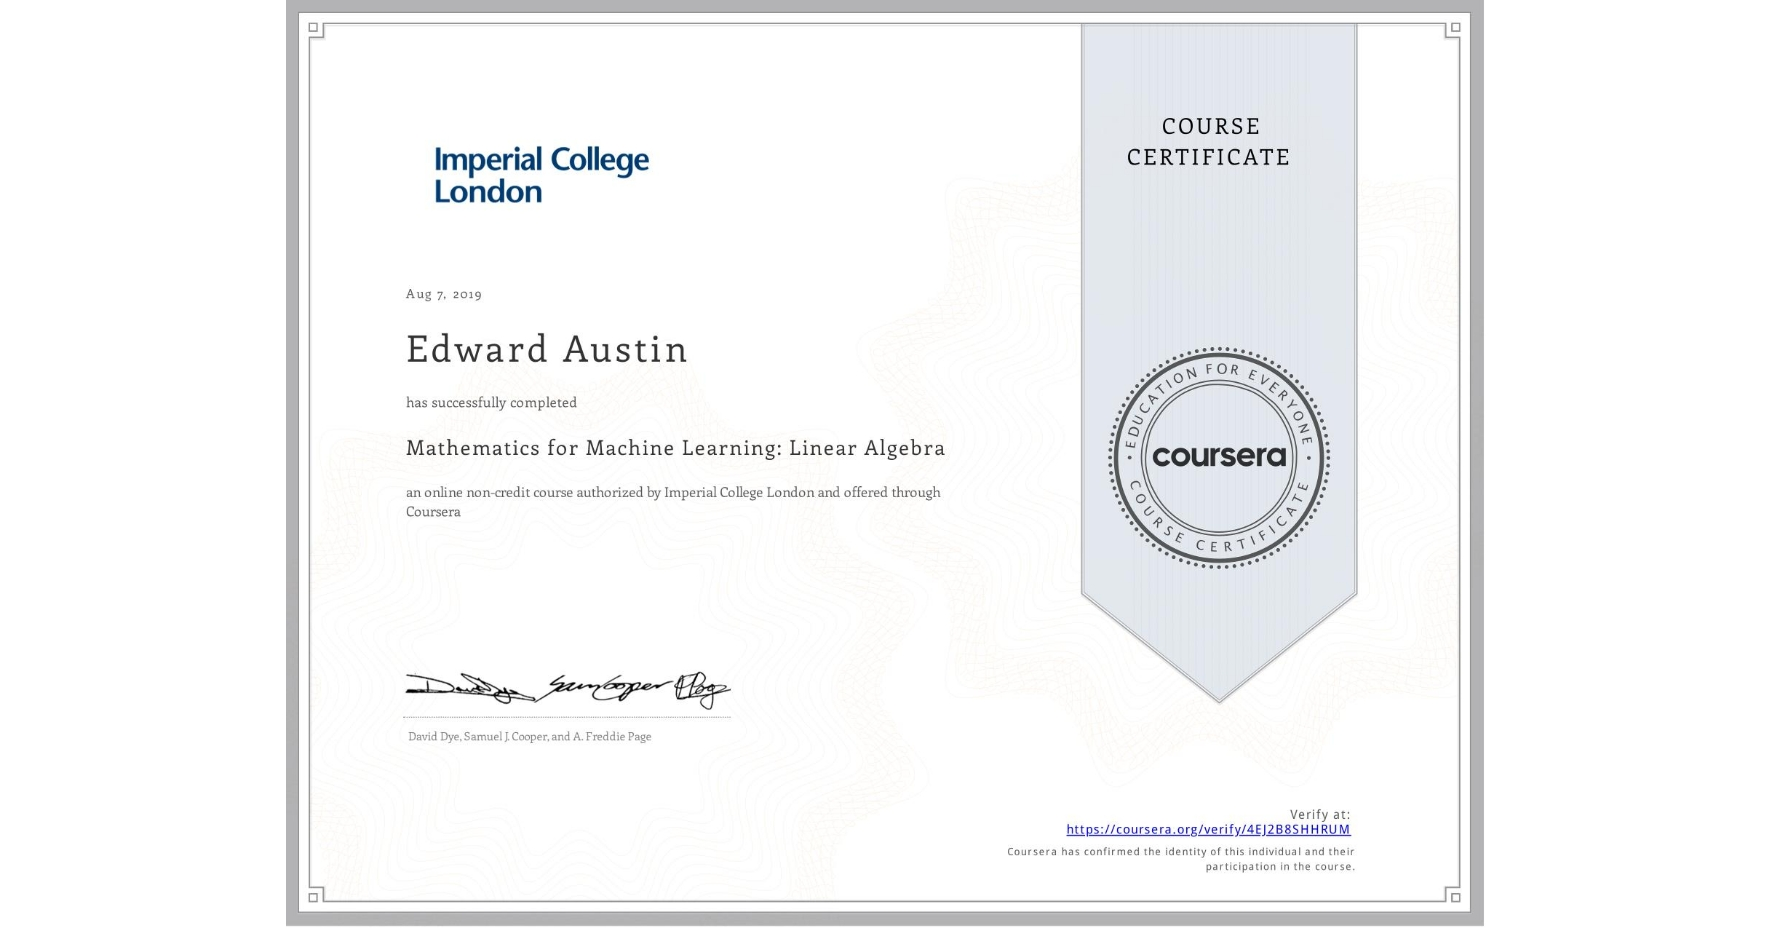 View certificate for Edward Austin, Mathematics for Machine Learning: Linear Algebra, an online non-credit course authorized by Imperial College London and offered through Coursera